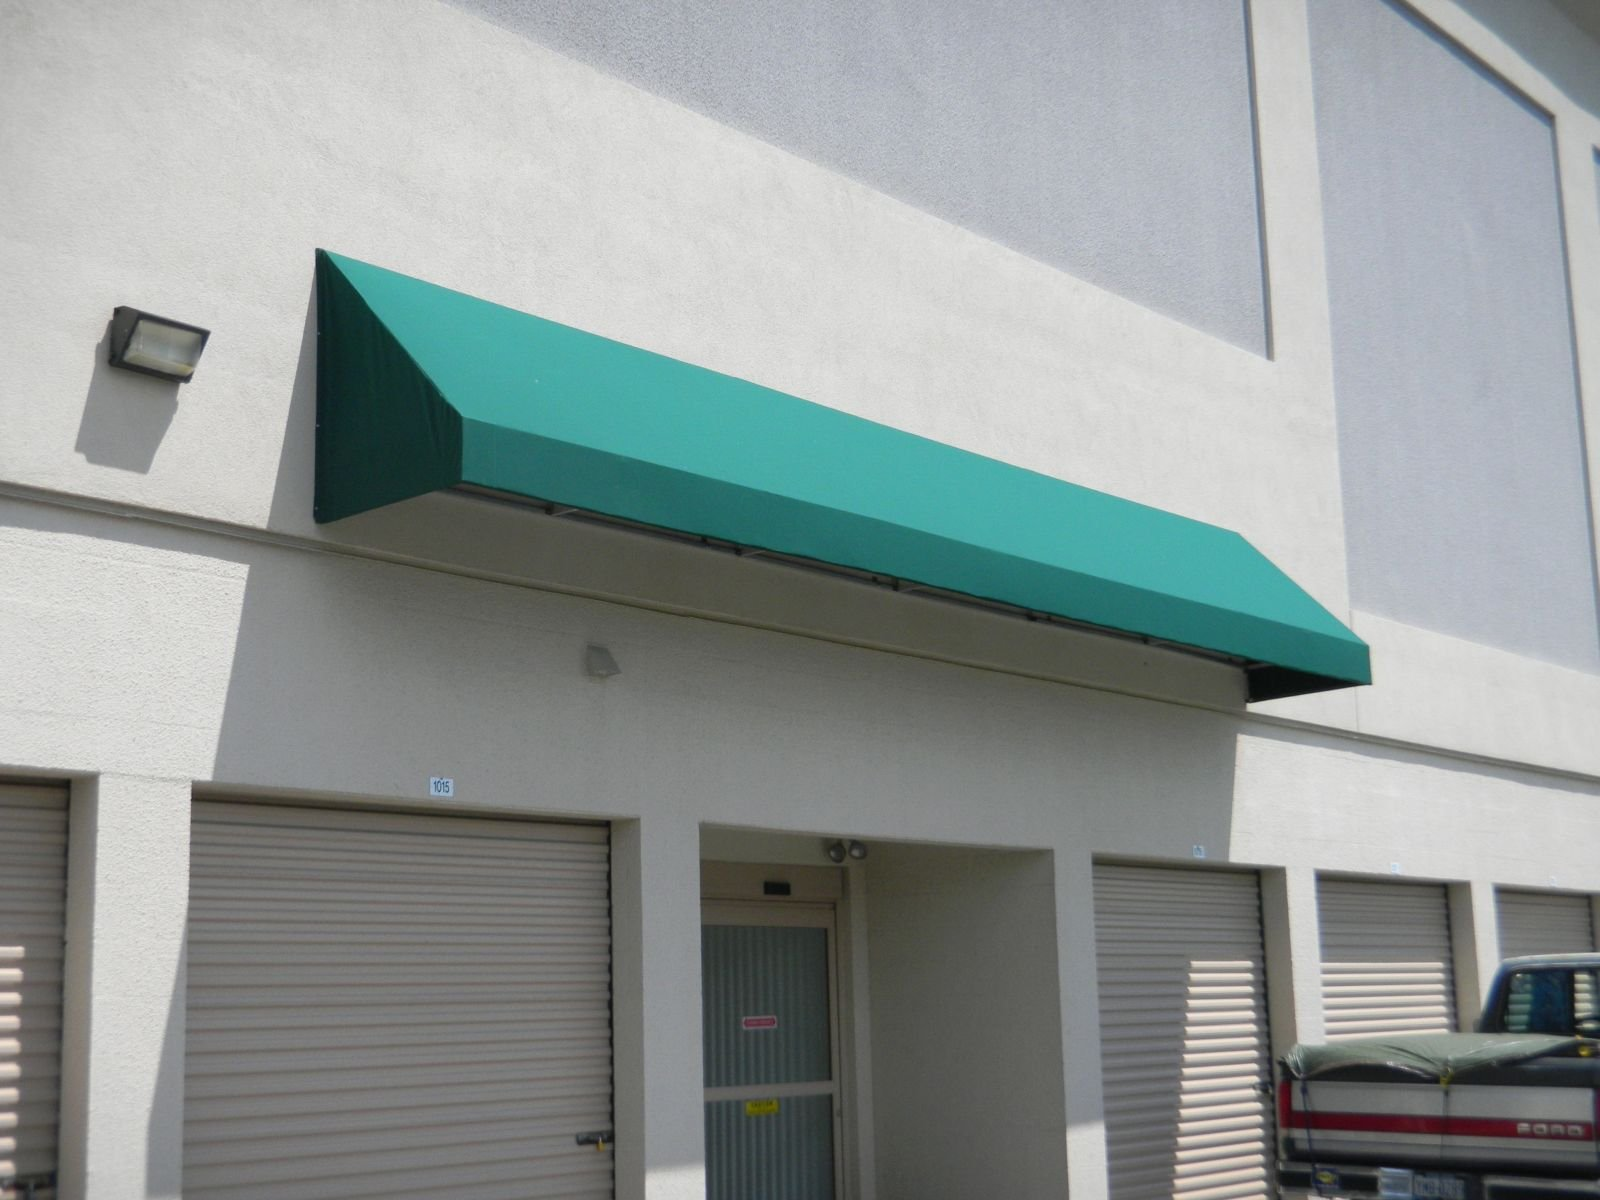 patio awning awnings walnut in ca building covers